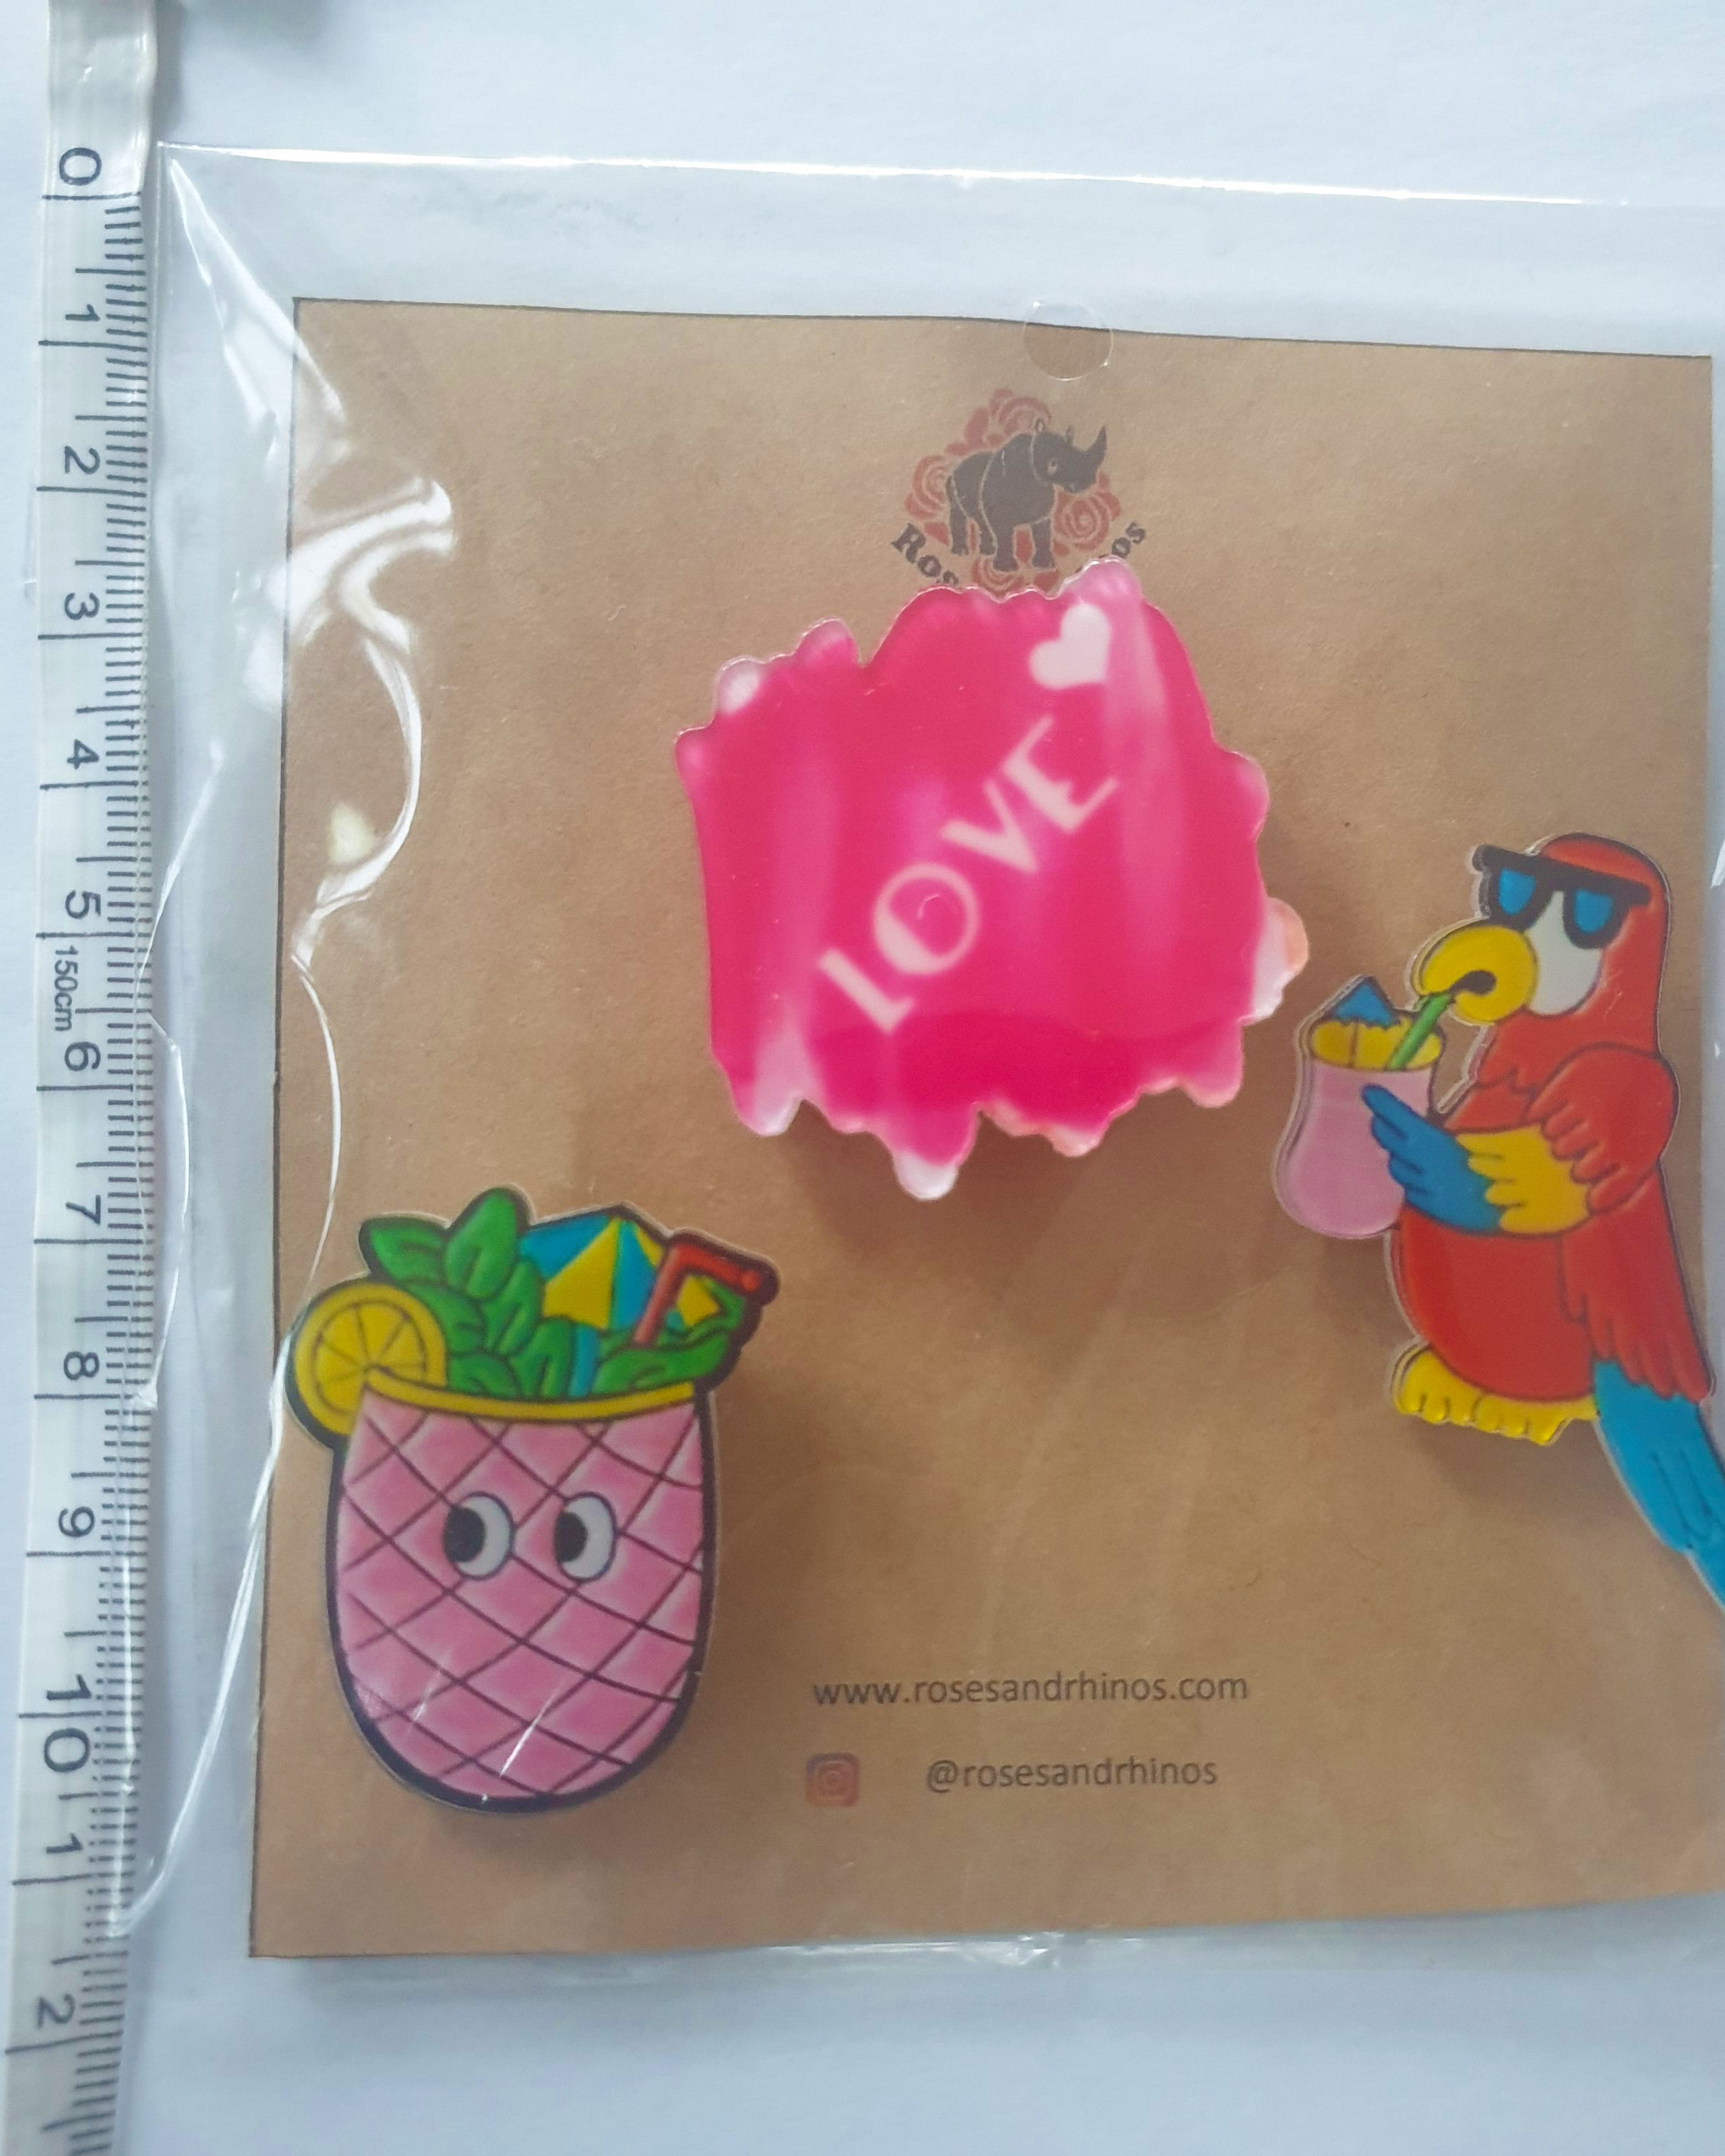 Parrot Love x 3 Pin - Roses & Rhinos